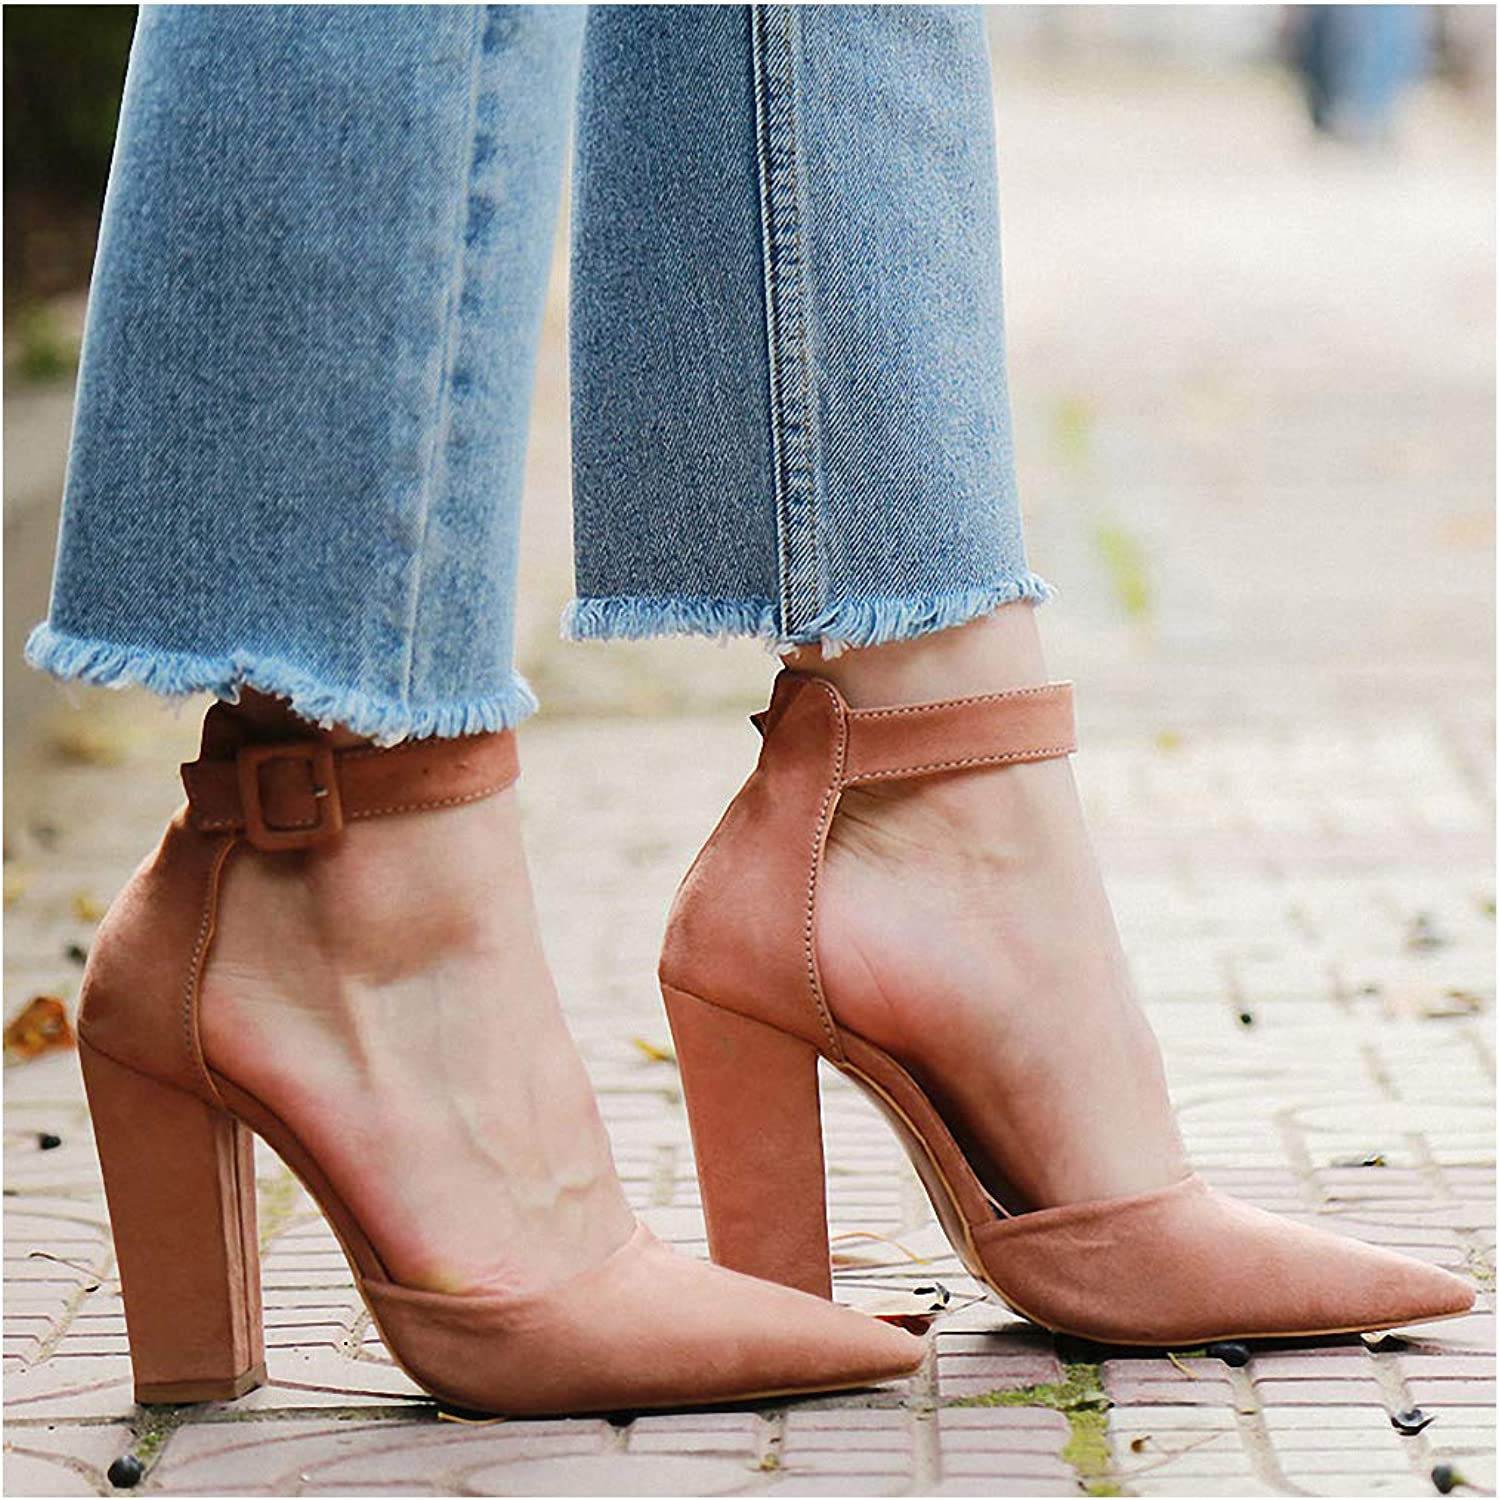 Tebapi Womens High-Heeled Pumps shoes Sexy Classic High Heels Women's Sandals Summer shoes Ladies Strappy Pumps Platform Heels Woman Ankle Strap shoes